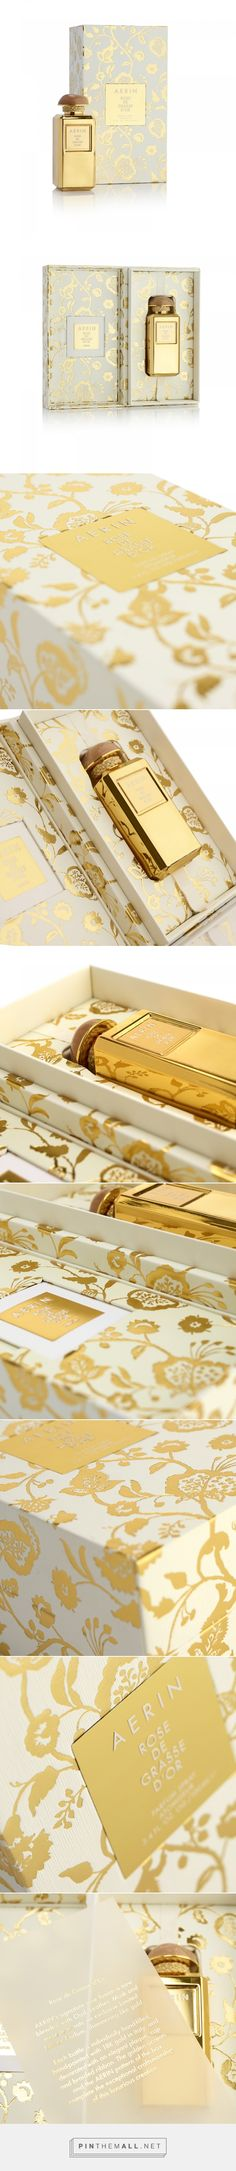 Aerin Rose de Glasse d'Or Fragrance - Packaging of the World - Creative Package Design Gallery - http://www.packagingoftheworld.com/2017/06/aerin-rose-de-glasse-dor-fragrance.html